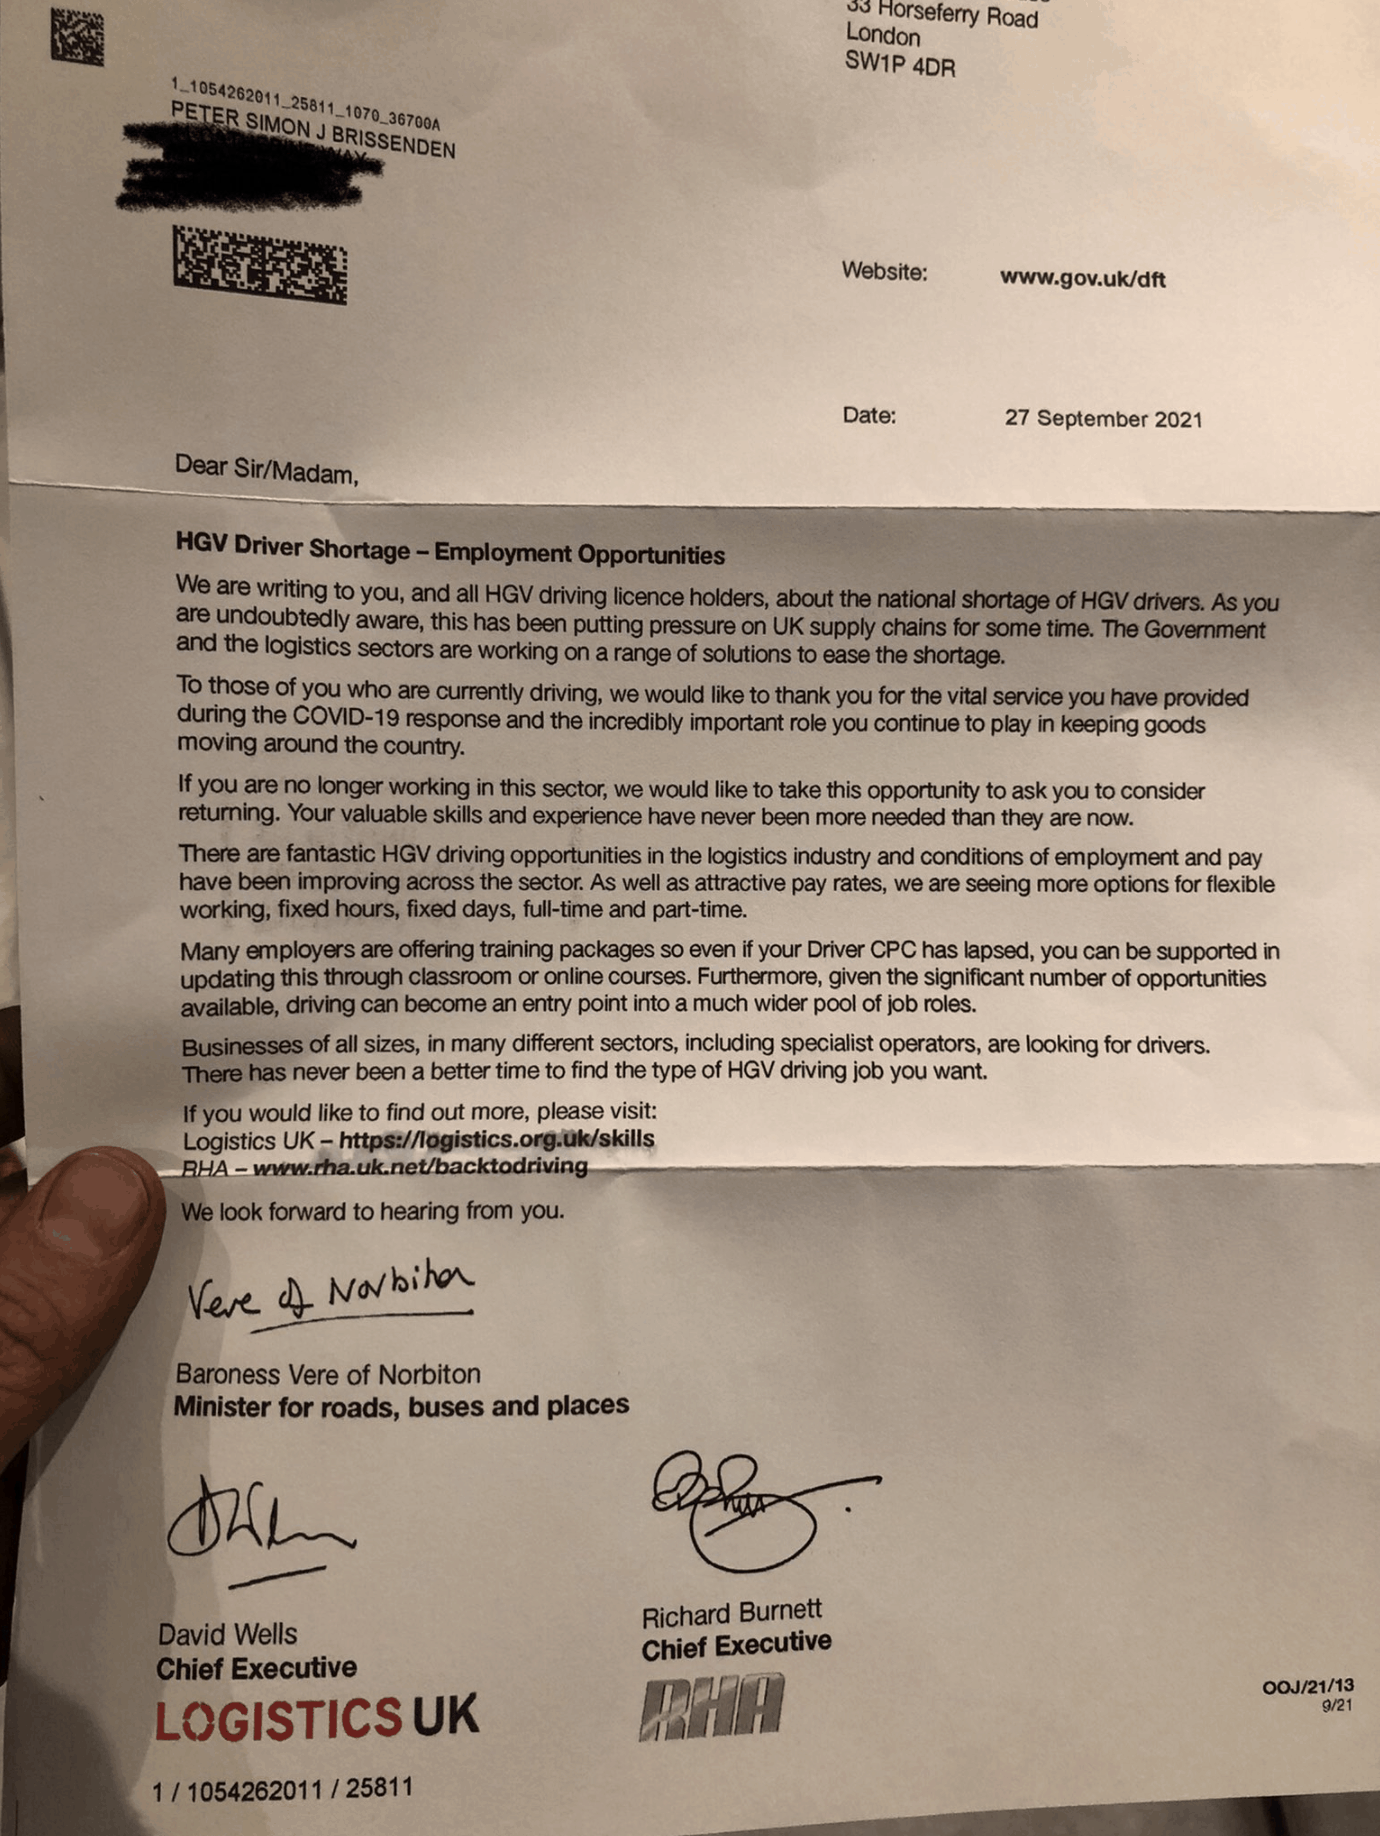 The letter sent by the UK government